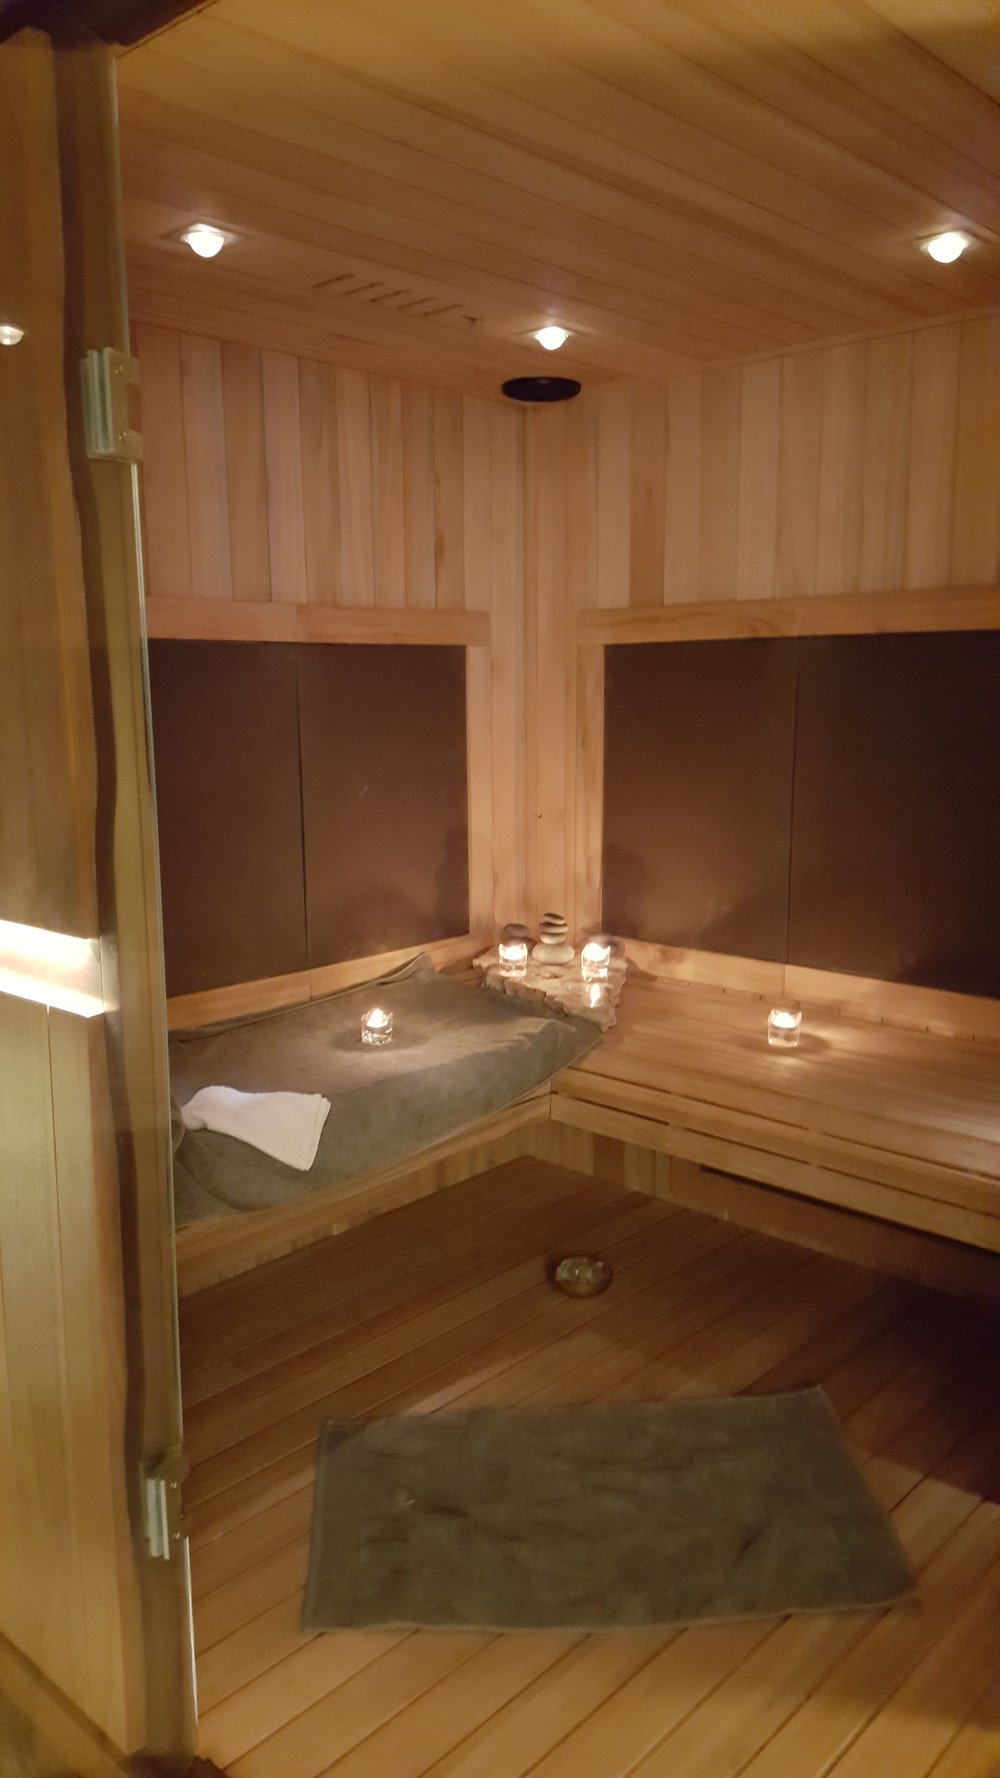 The Beautiful Sweat Lounge aka Infrared Sauna, which s made entirely of Eucalyptus wood.i